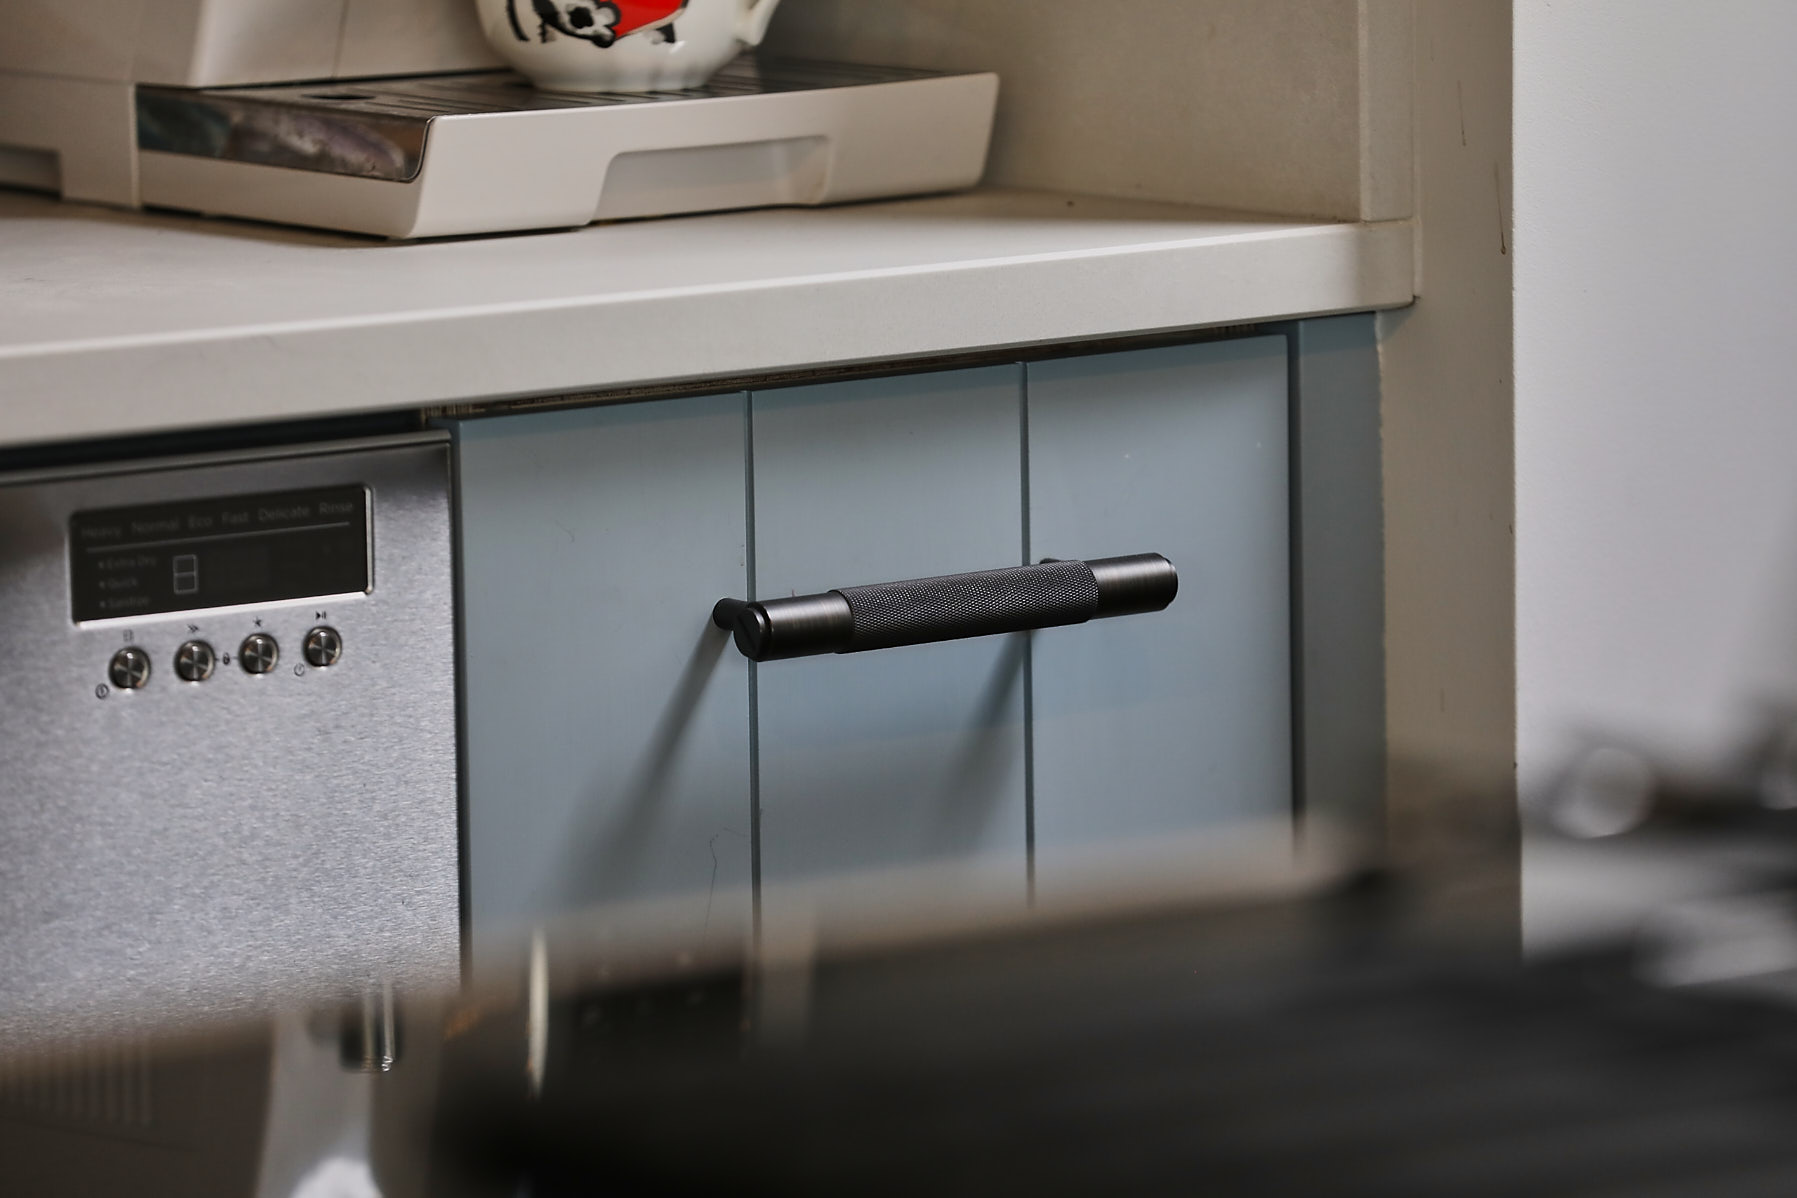 Buster and Punch bar pull on kitchen cabinet